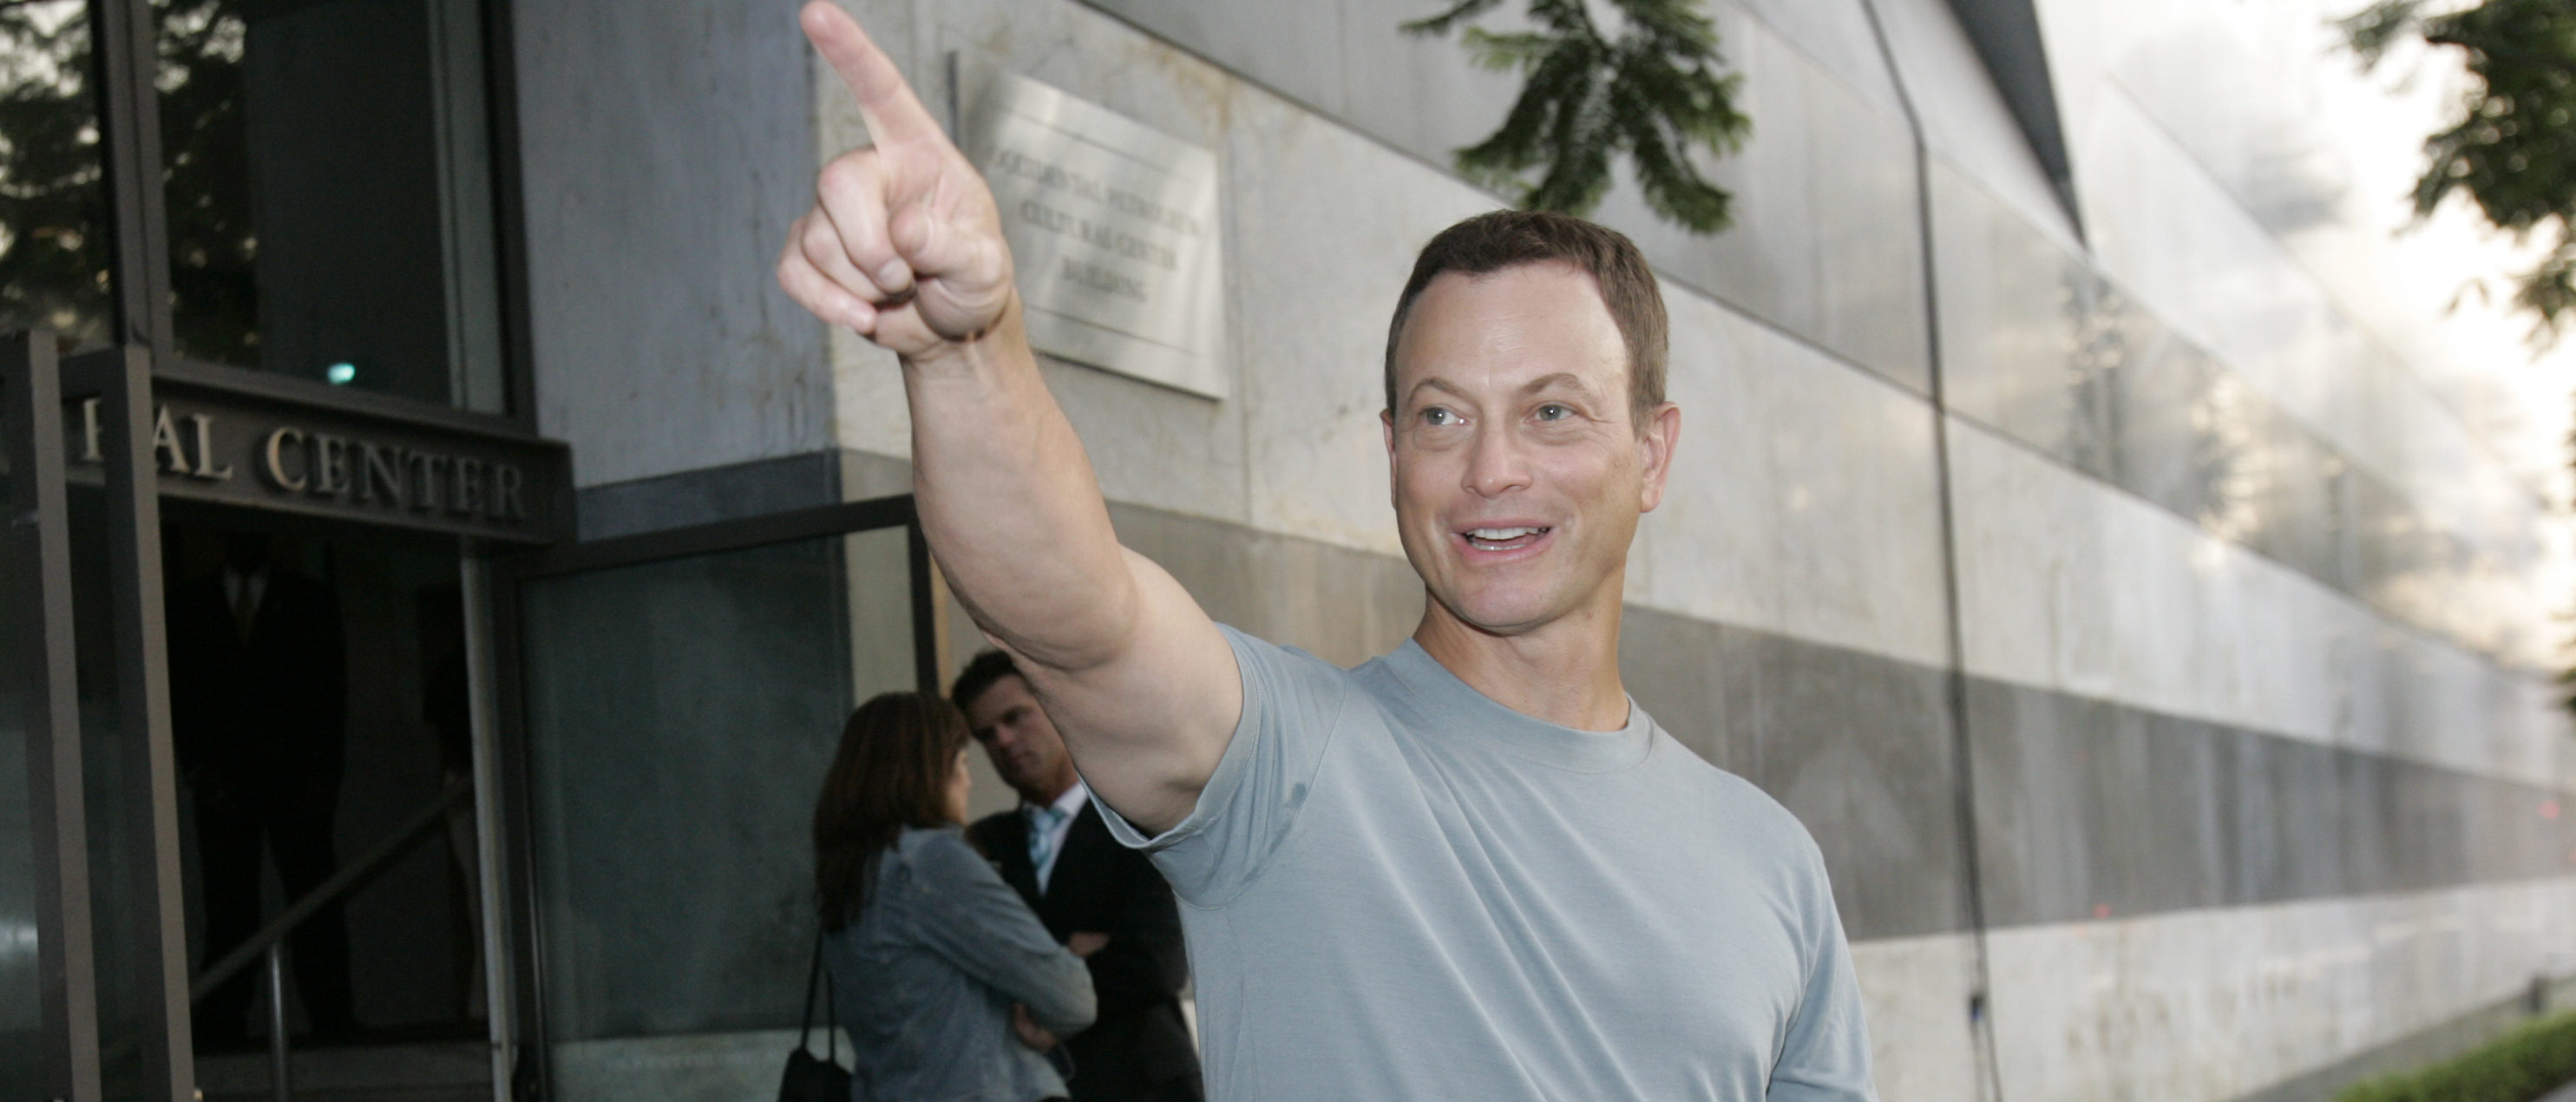 Actor Gary Sinise gestures as he arrives at the CBS summer 2005 press tour party at the Hammer museum, Los Angeles, July 19, 2005. REUTERS/Mario Anzuoni